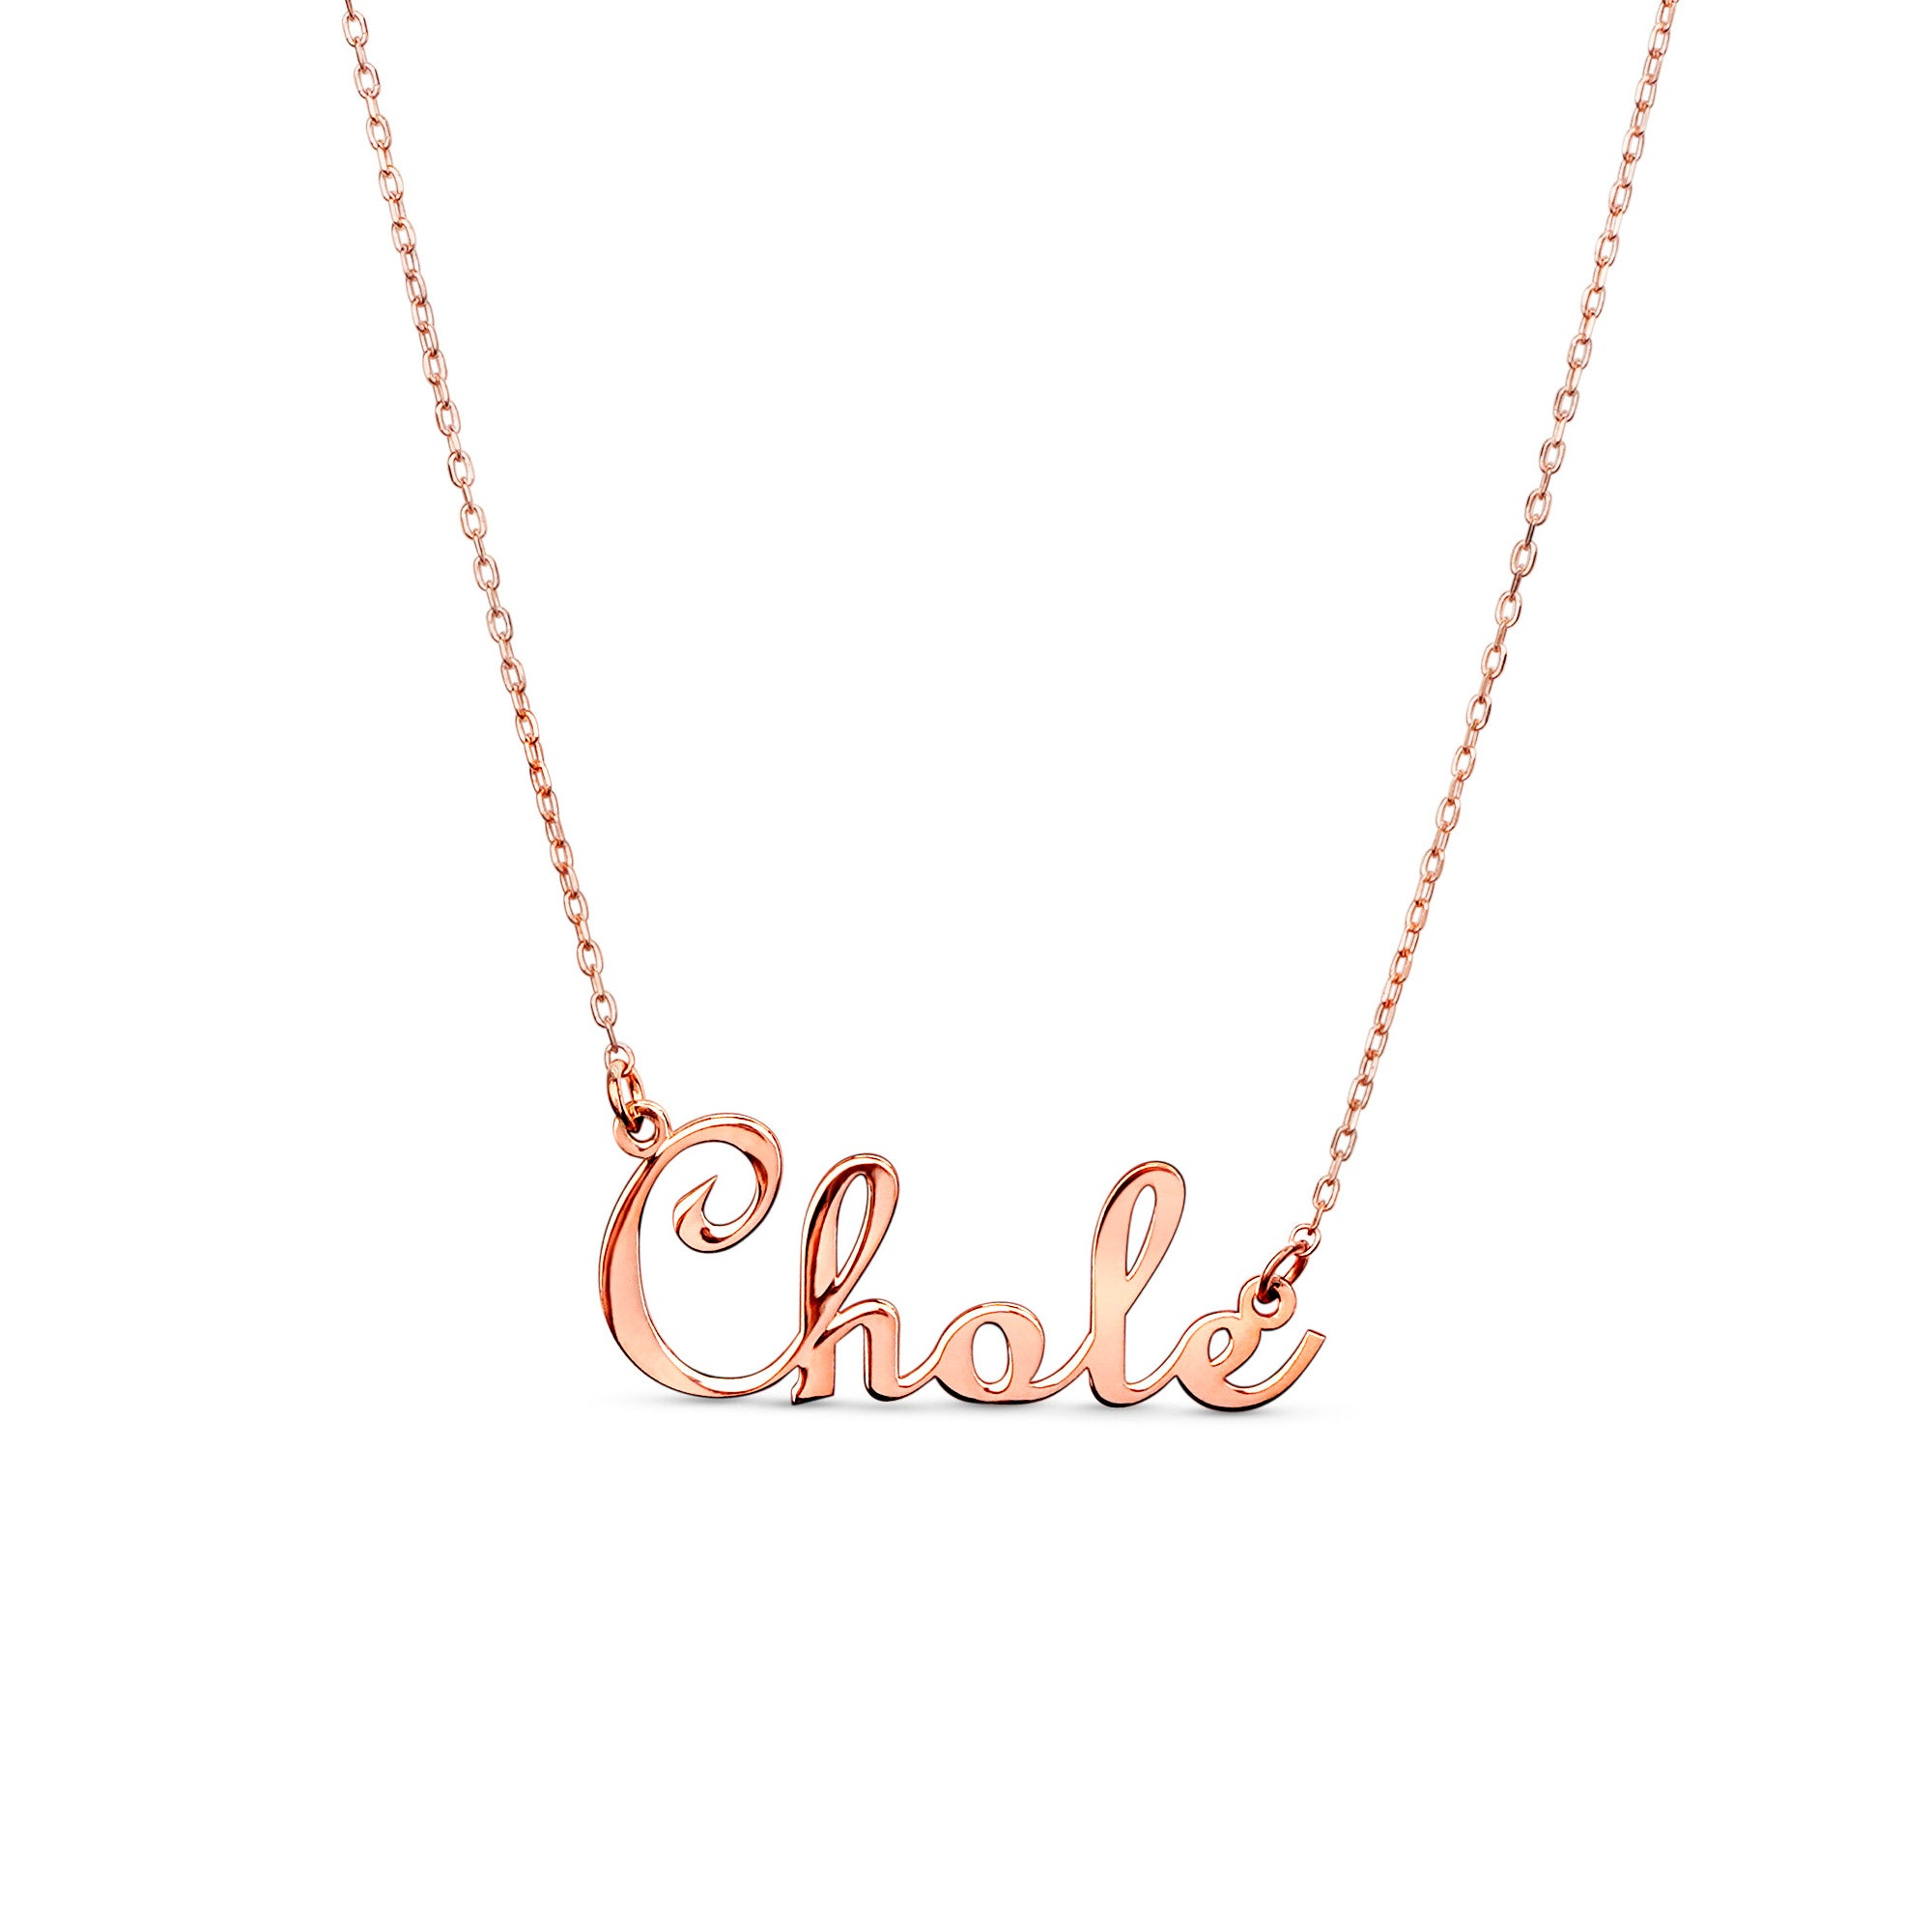 RockYeah Name Necklace